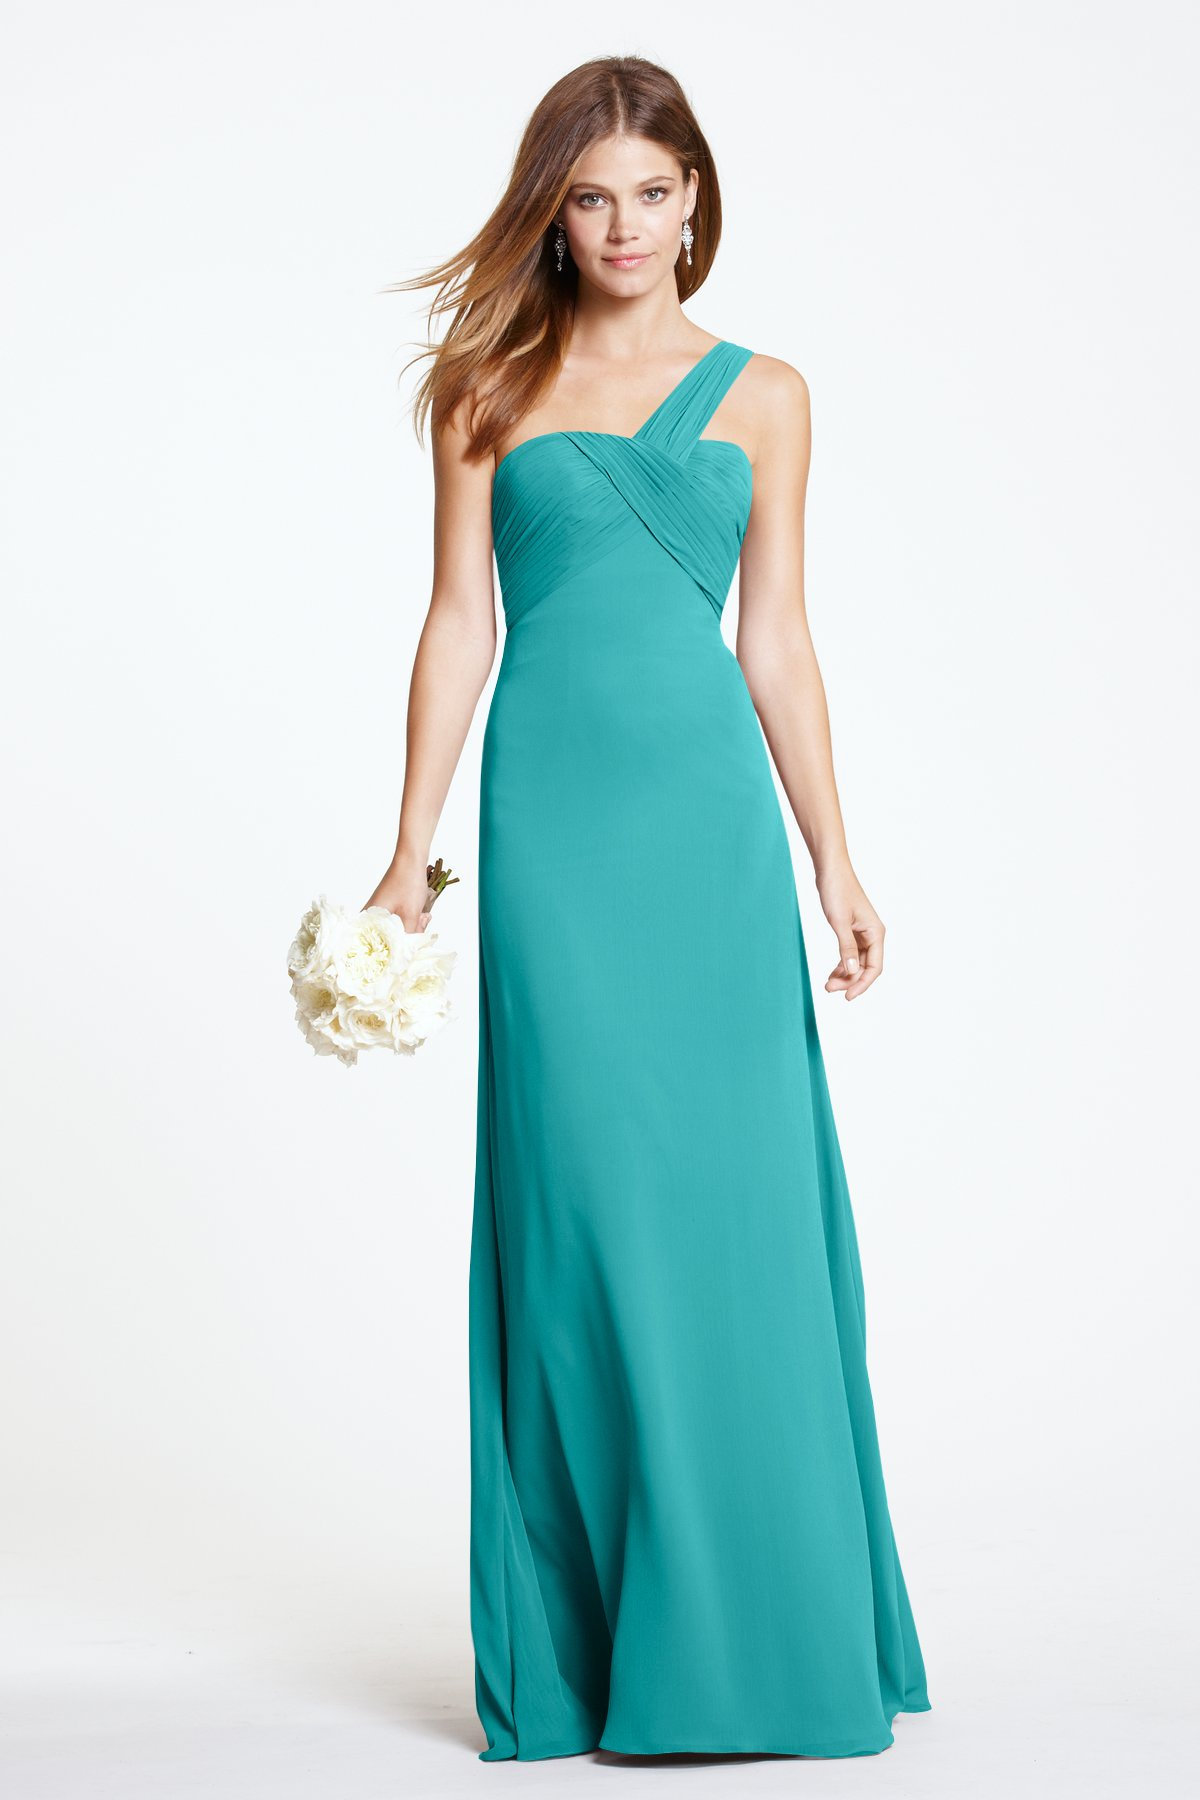 Aqua Long One Shoulder Simple Bridesmaid dress